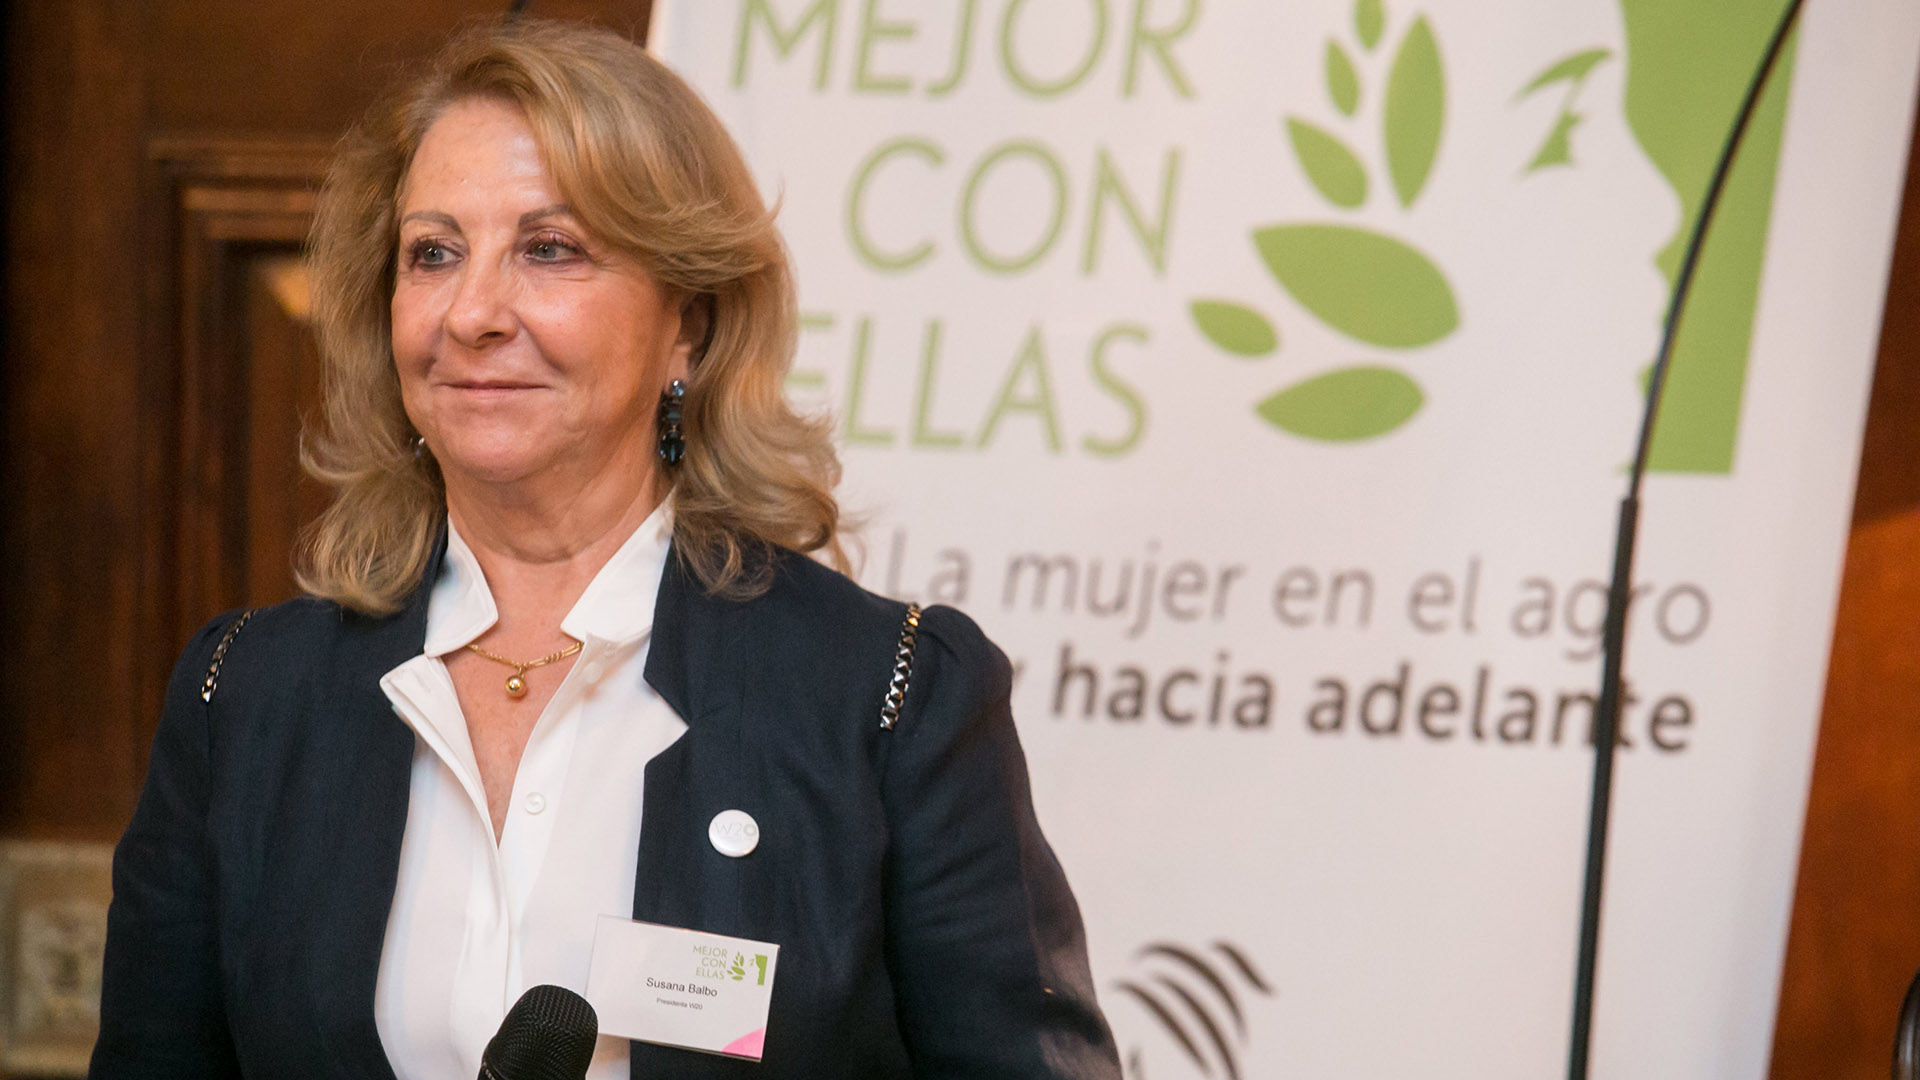 Susana Balbo, chair de Woman 20